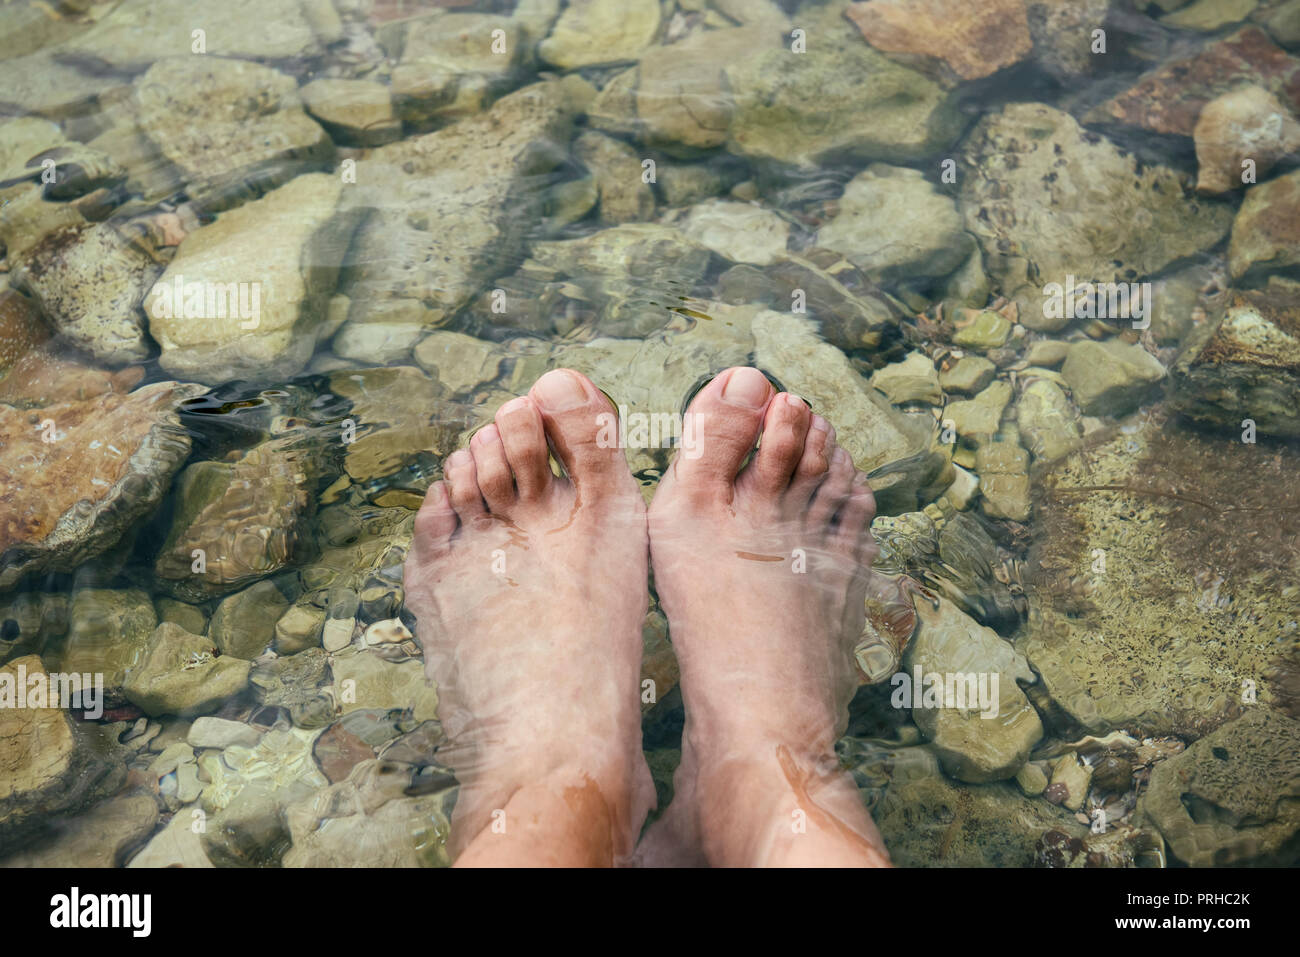 Female feet in the water (beach) - Stock Image